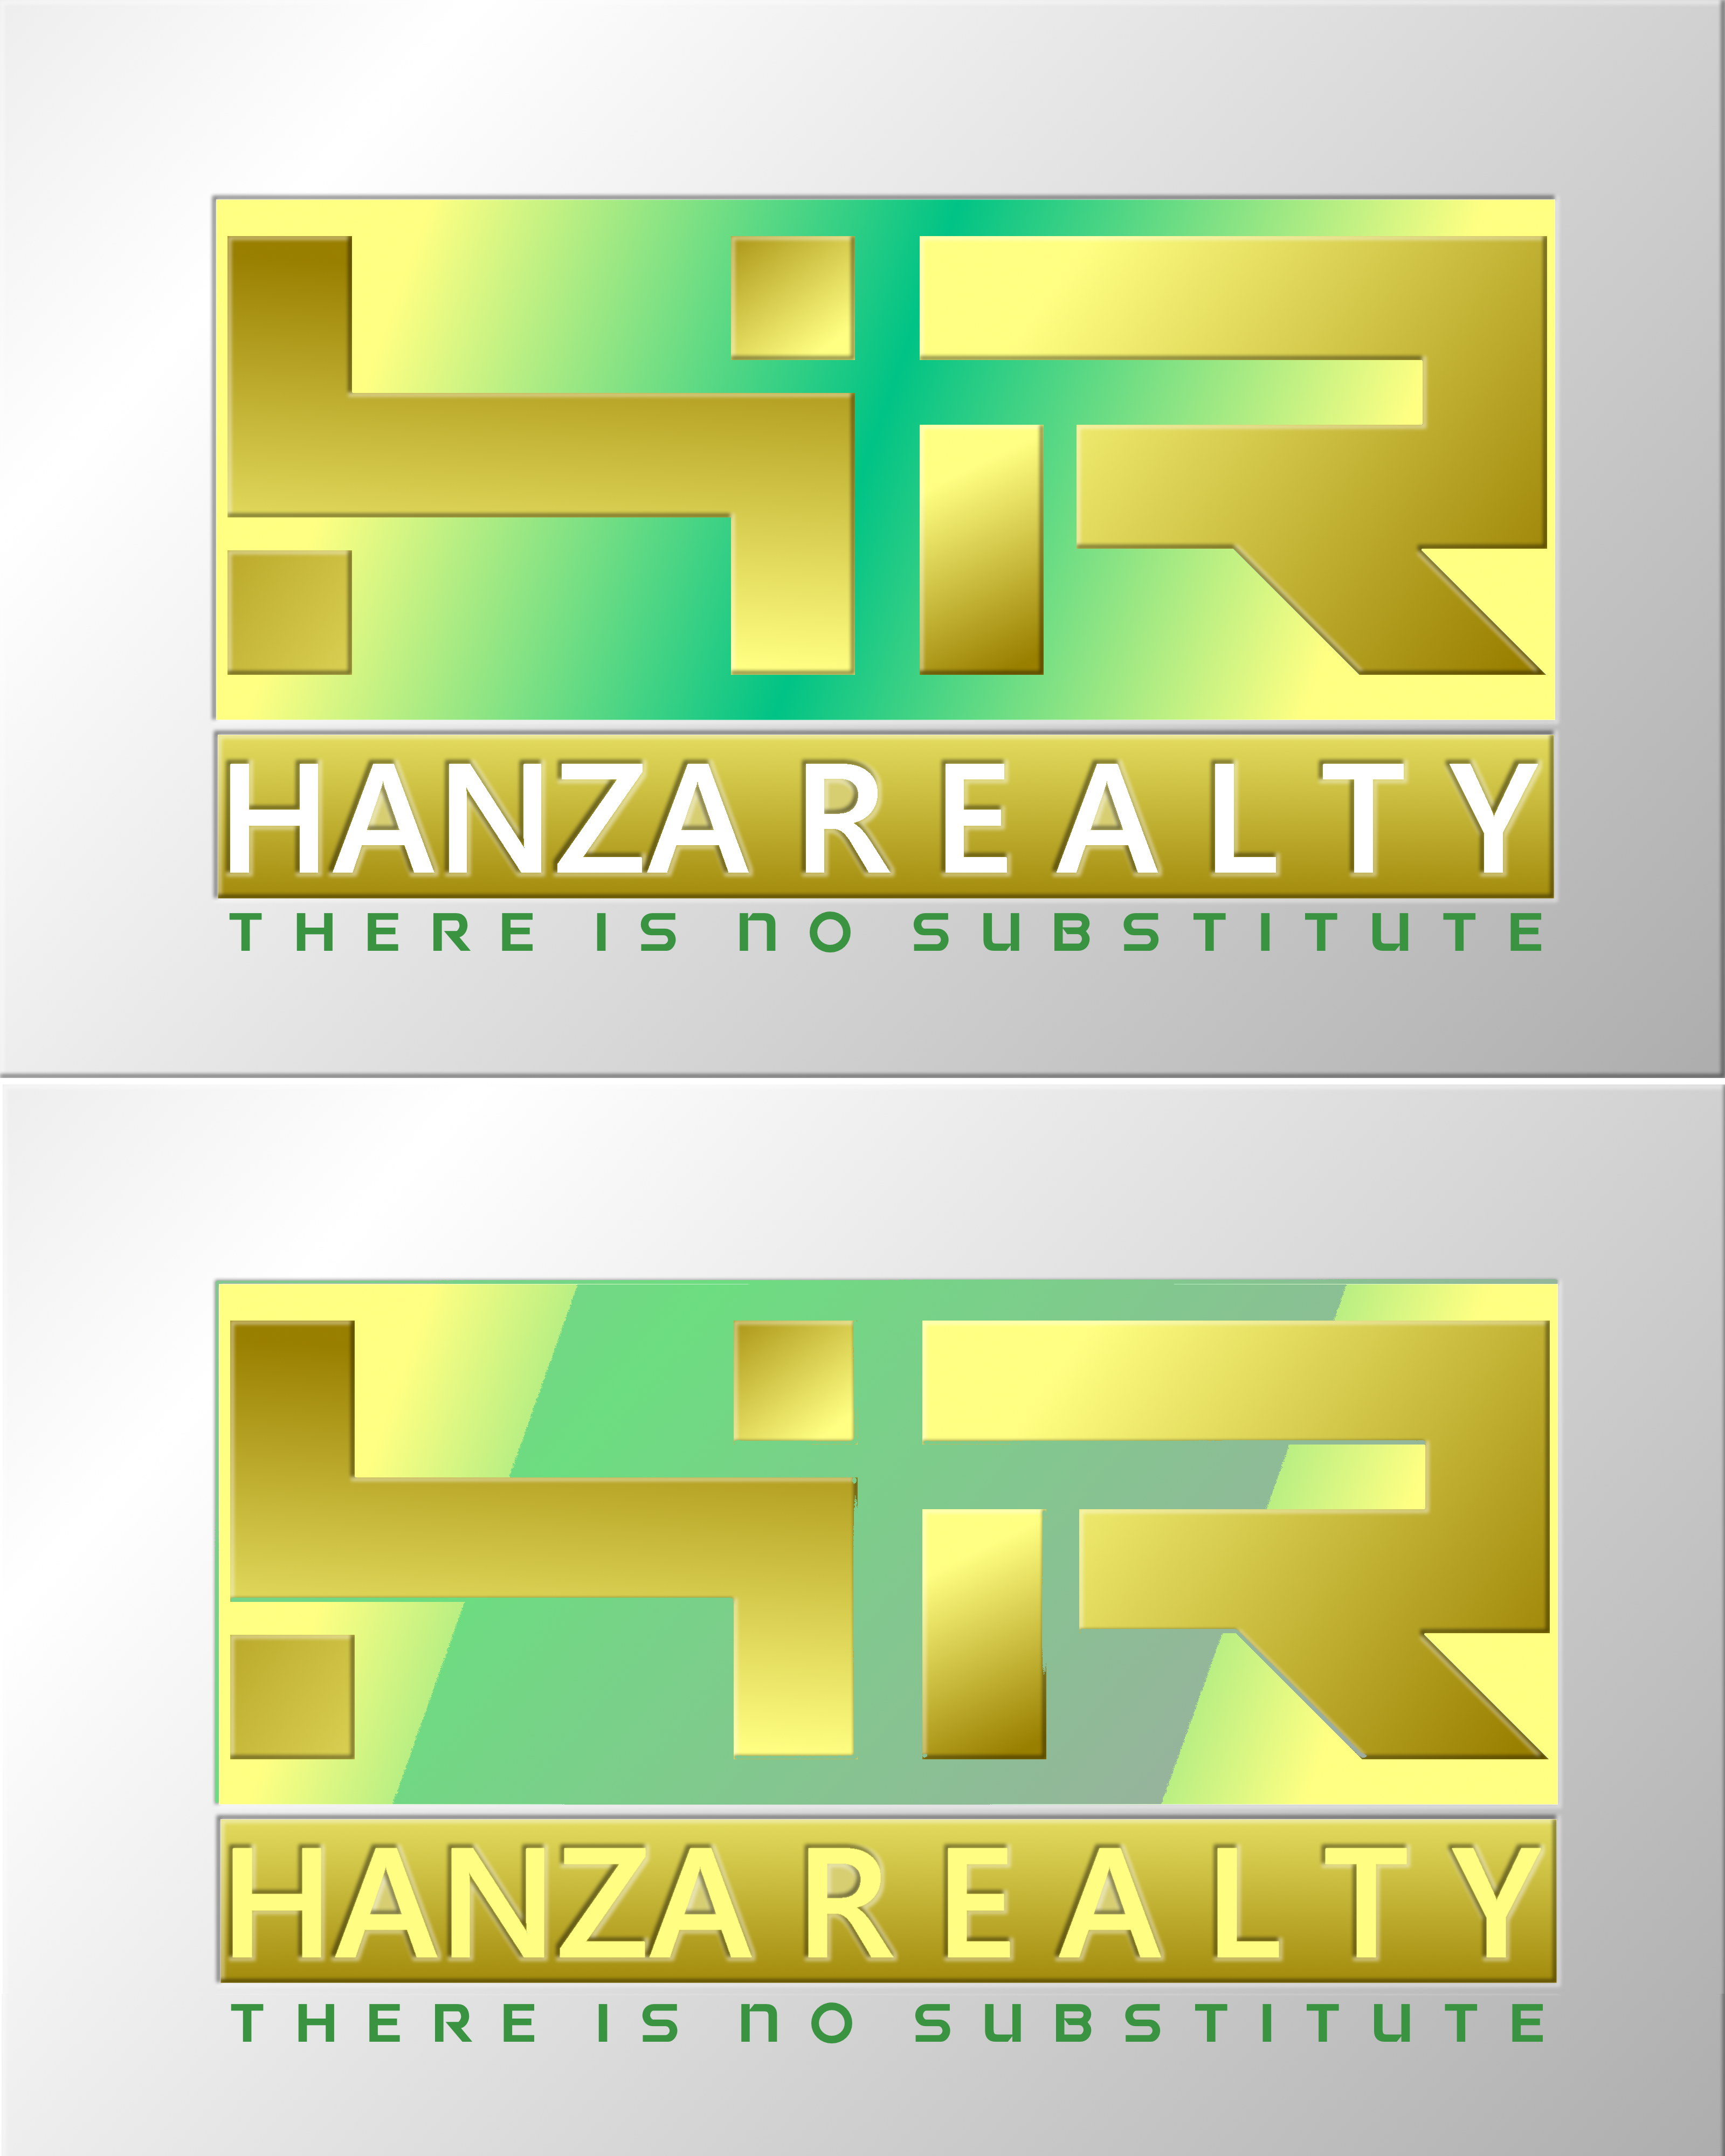 Logo Design by Roberto Bassi - Entry No. 438 in the Logo Design Contest Logo Design for Hanza Realty.